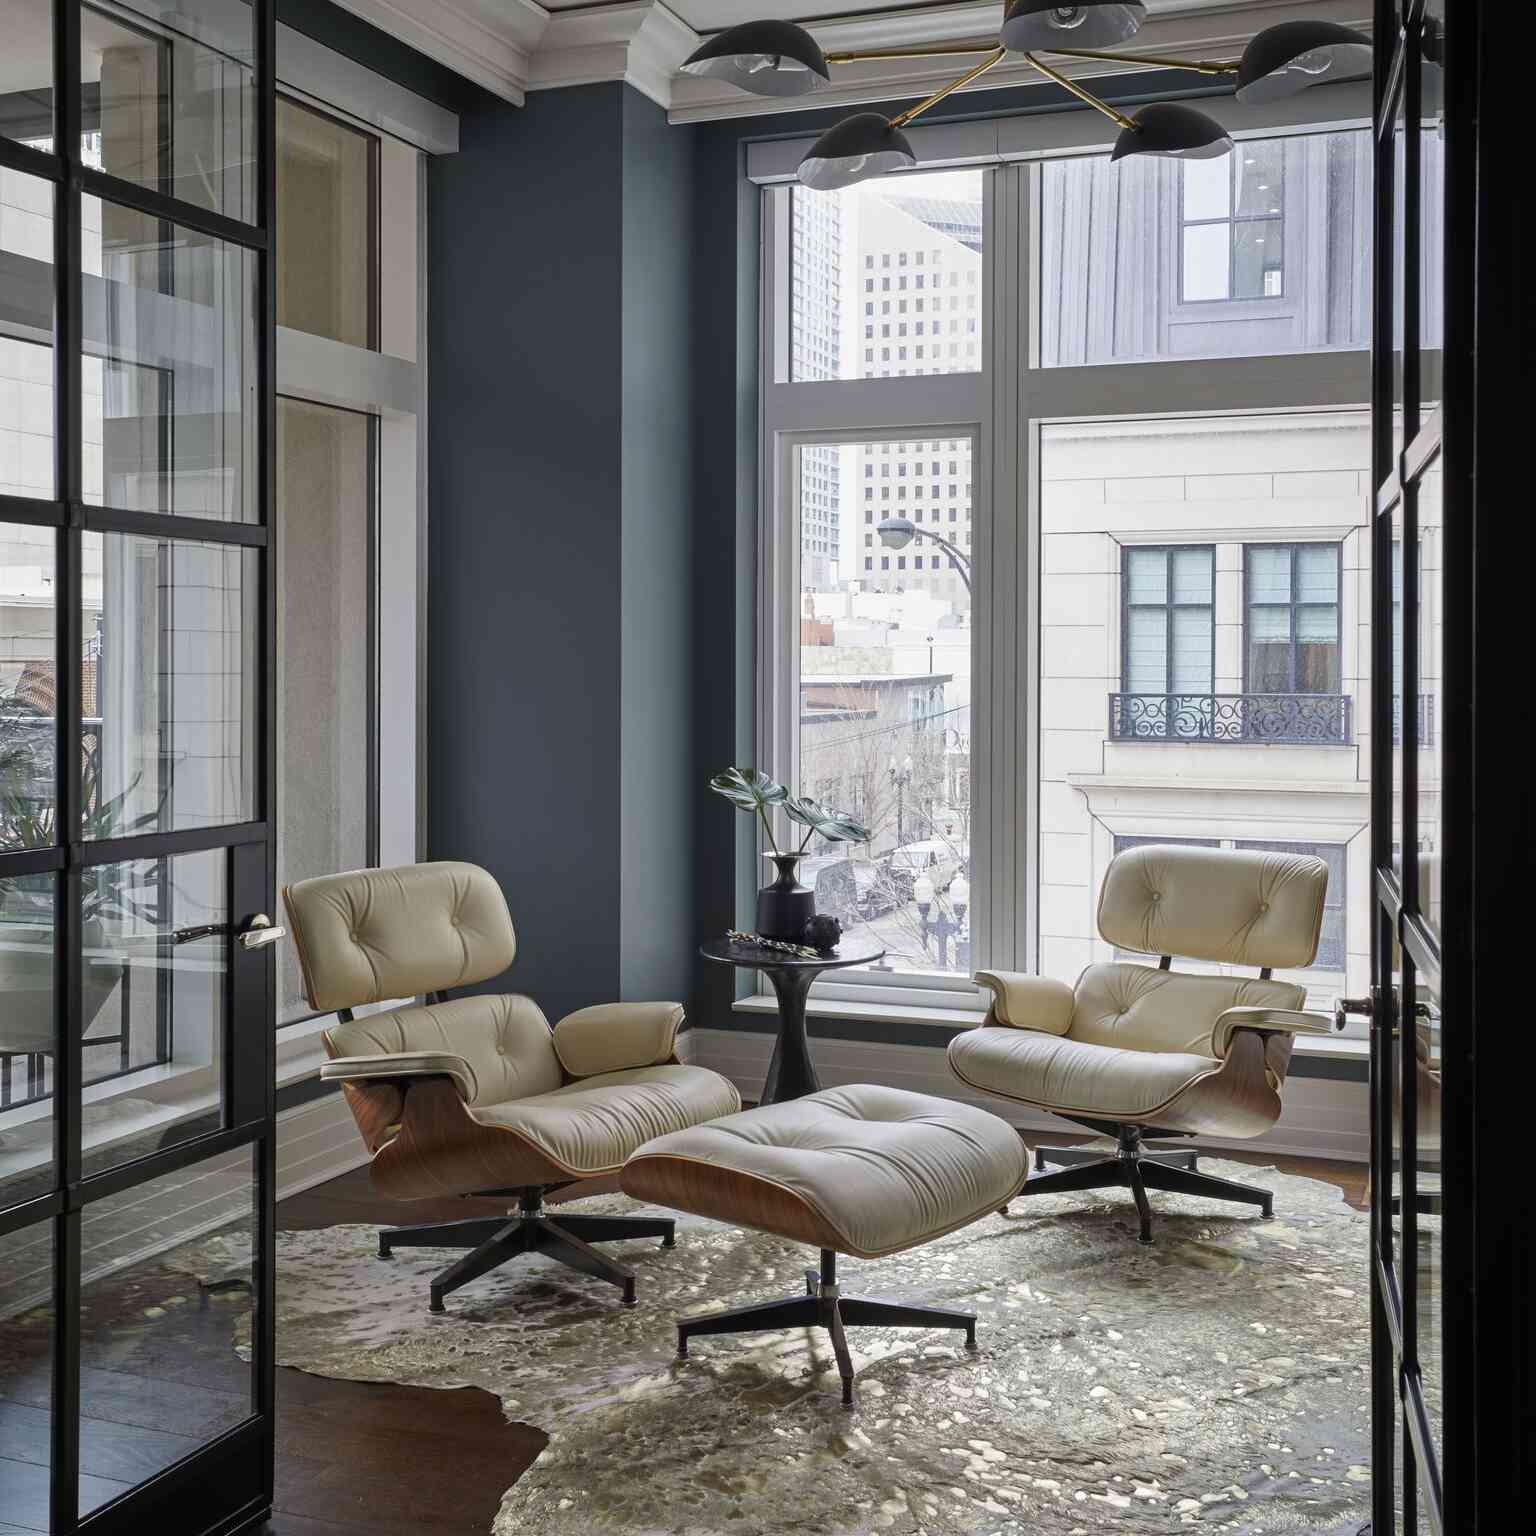 One Room I'll Never Forget - Donna Mondi Office